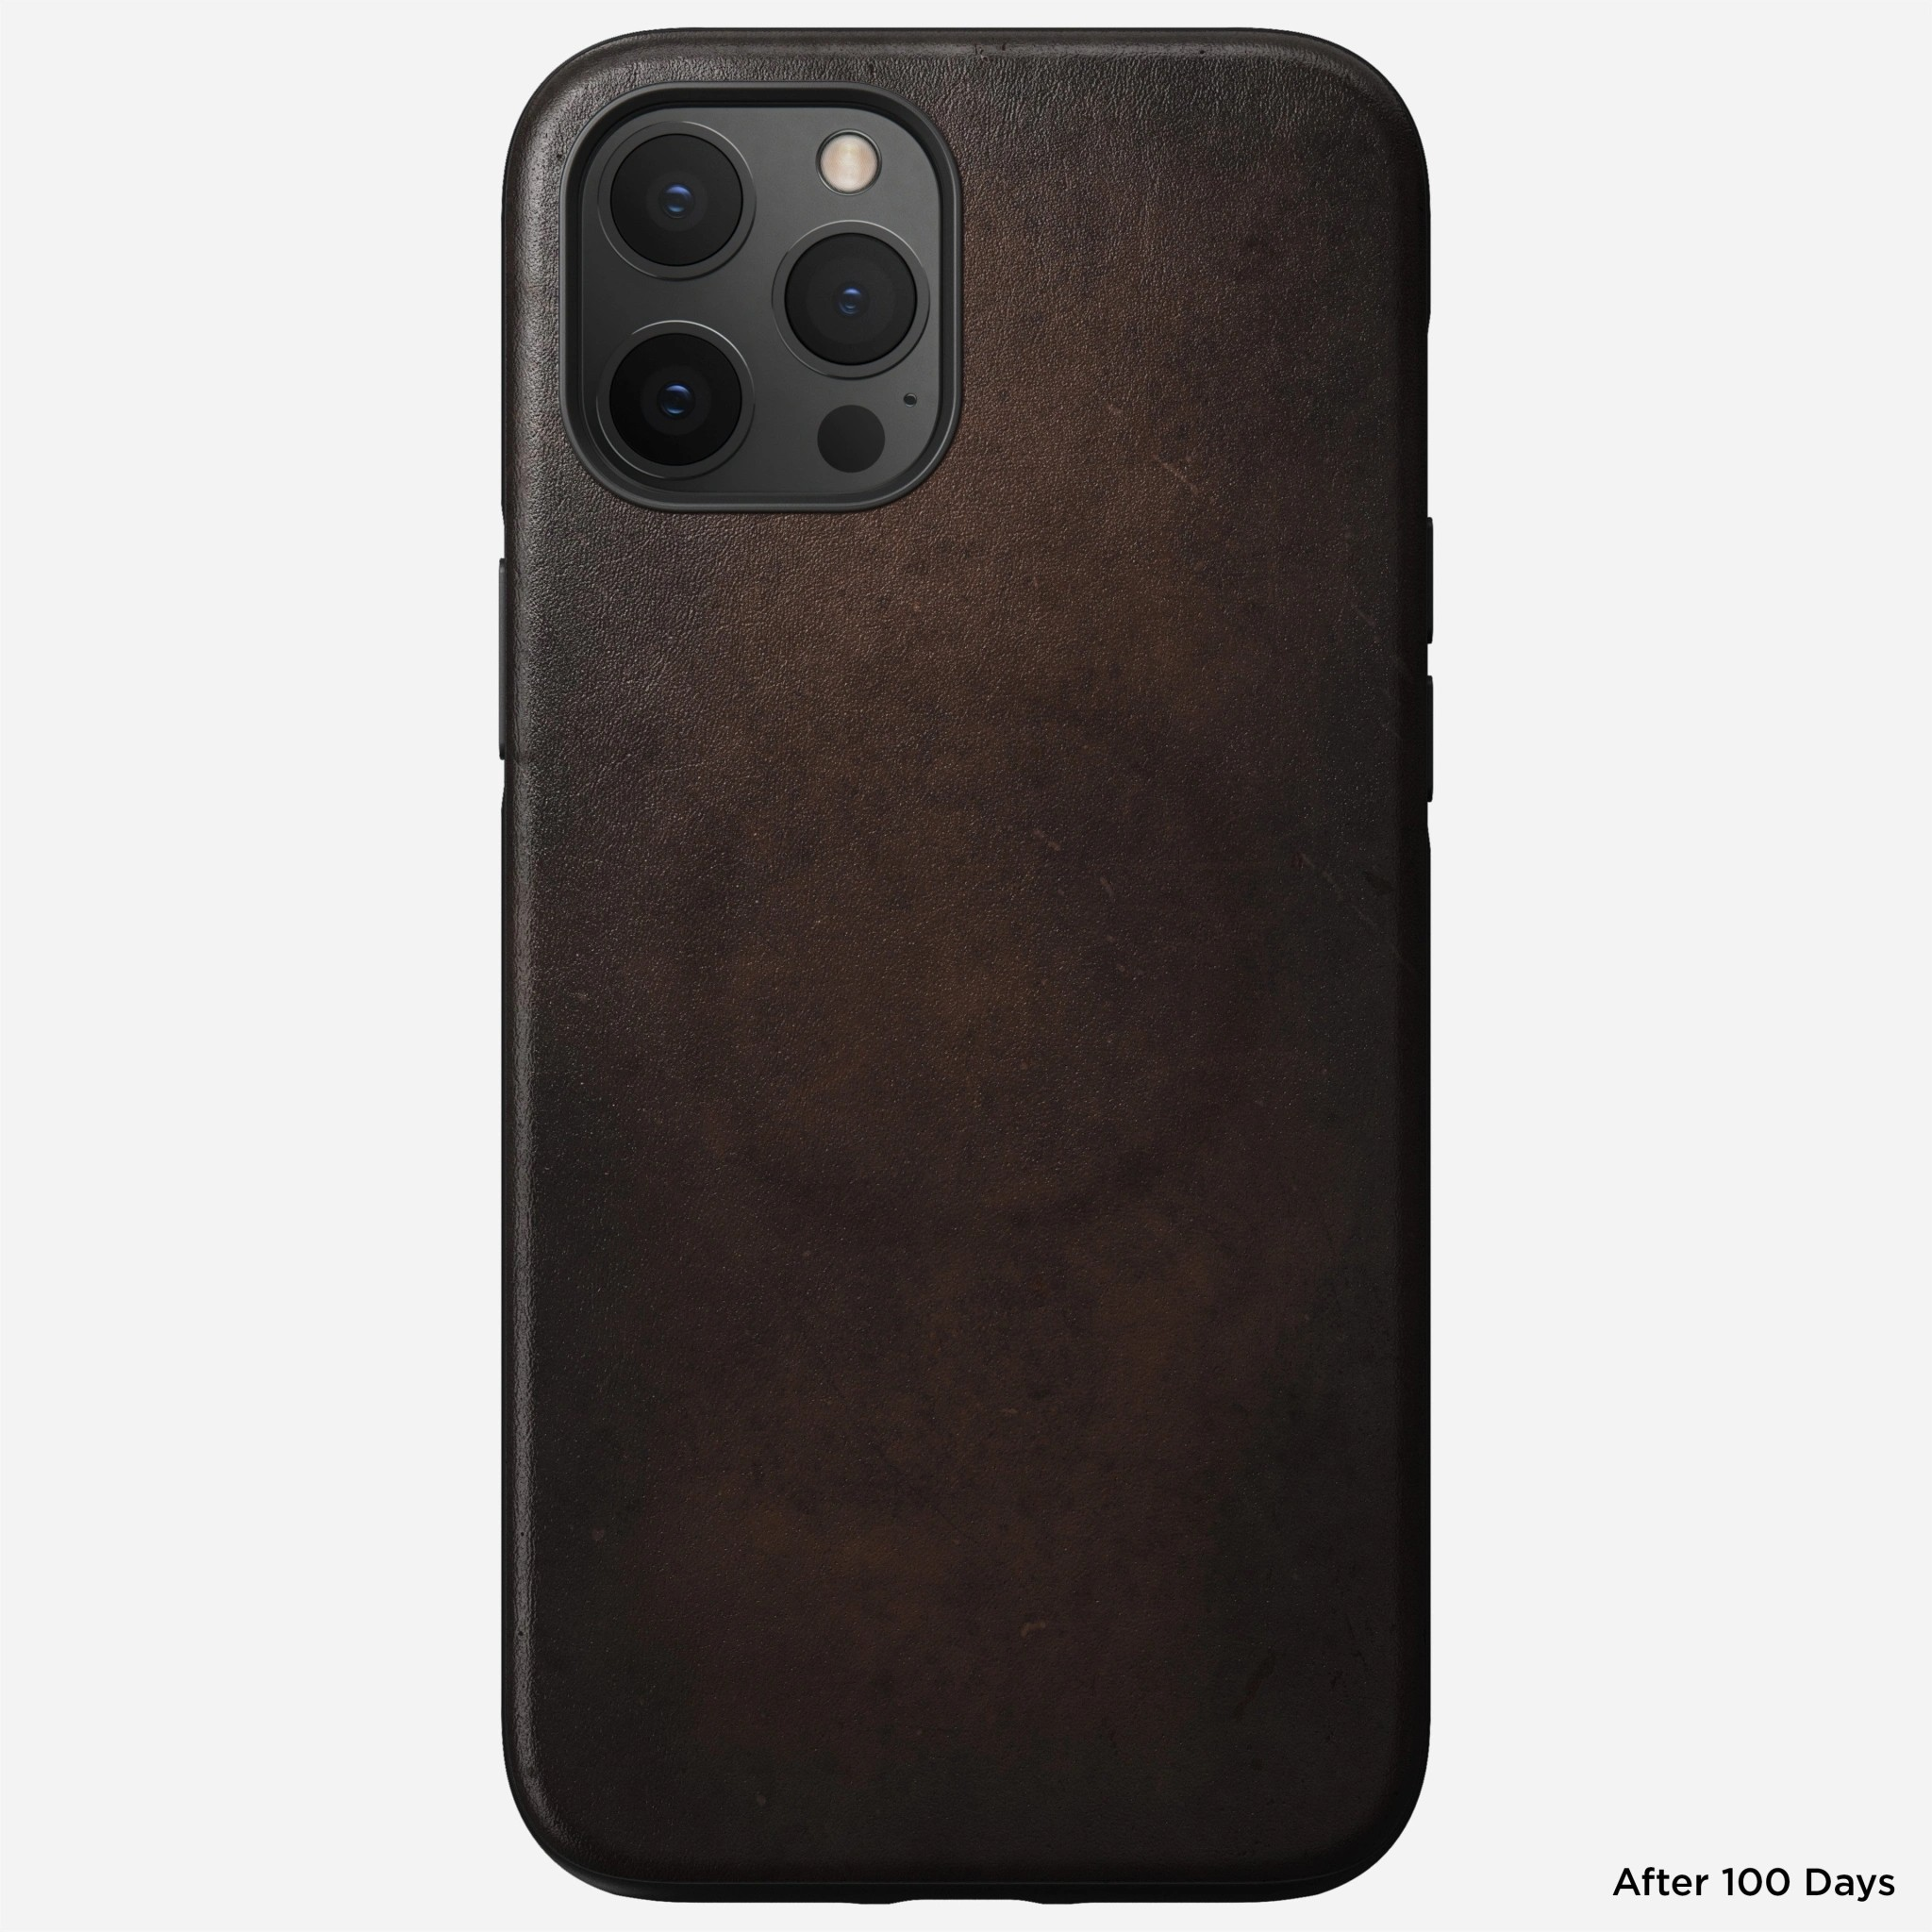 Nomad - MagSafe Leather Case - iPhone 12 Pro Max - Rustic Brown, NM01970385